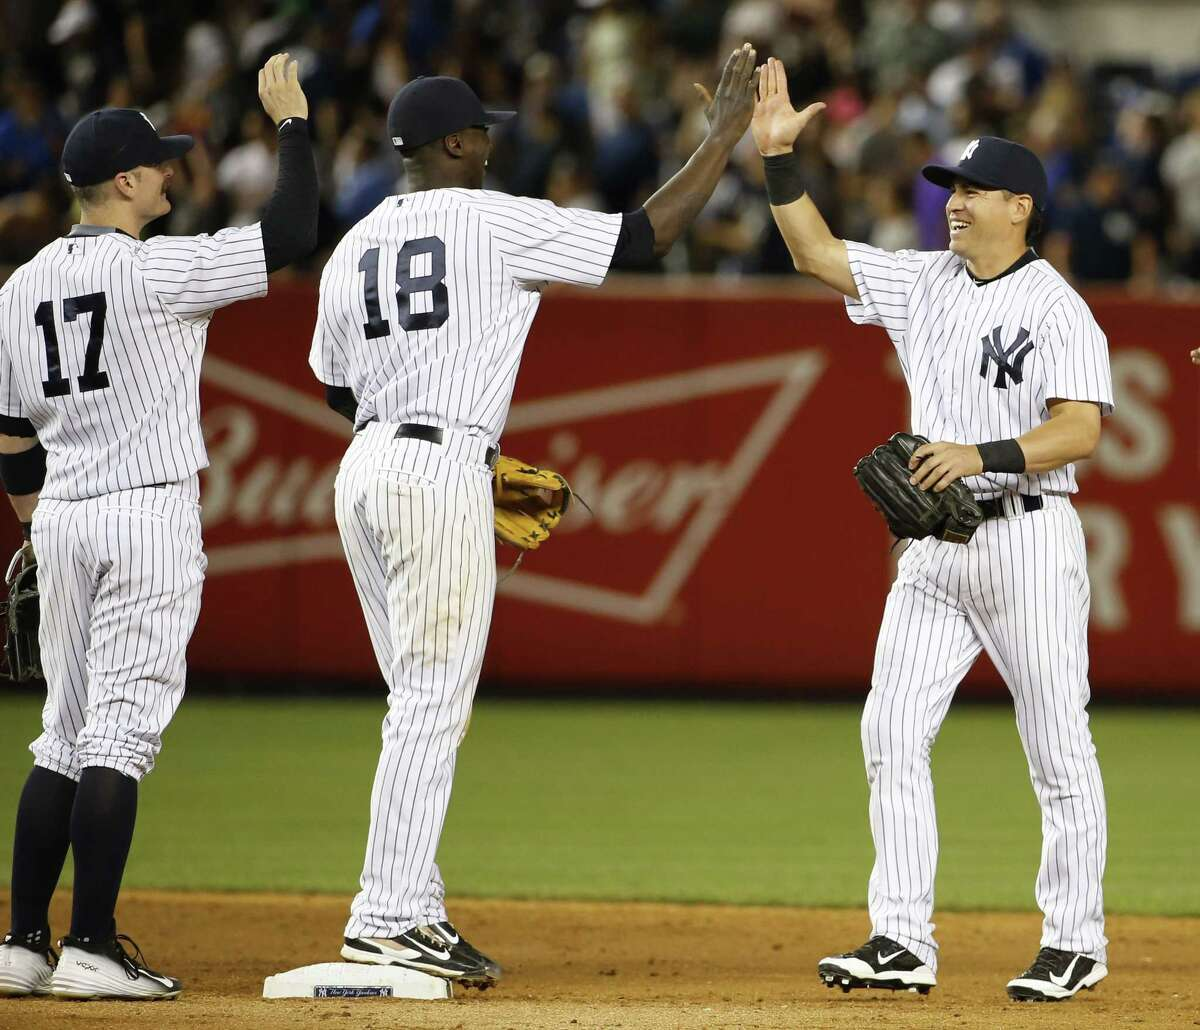 Yankees second baseman Brendan Ryan (17), and shortstop Didi Gregorius (18) congratulate Jacoby Ellsbury, right, after the Yankees 2-1 victory over the Red Sox on Thursday.